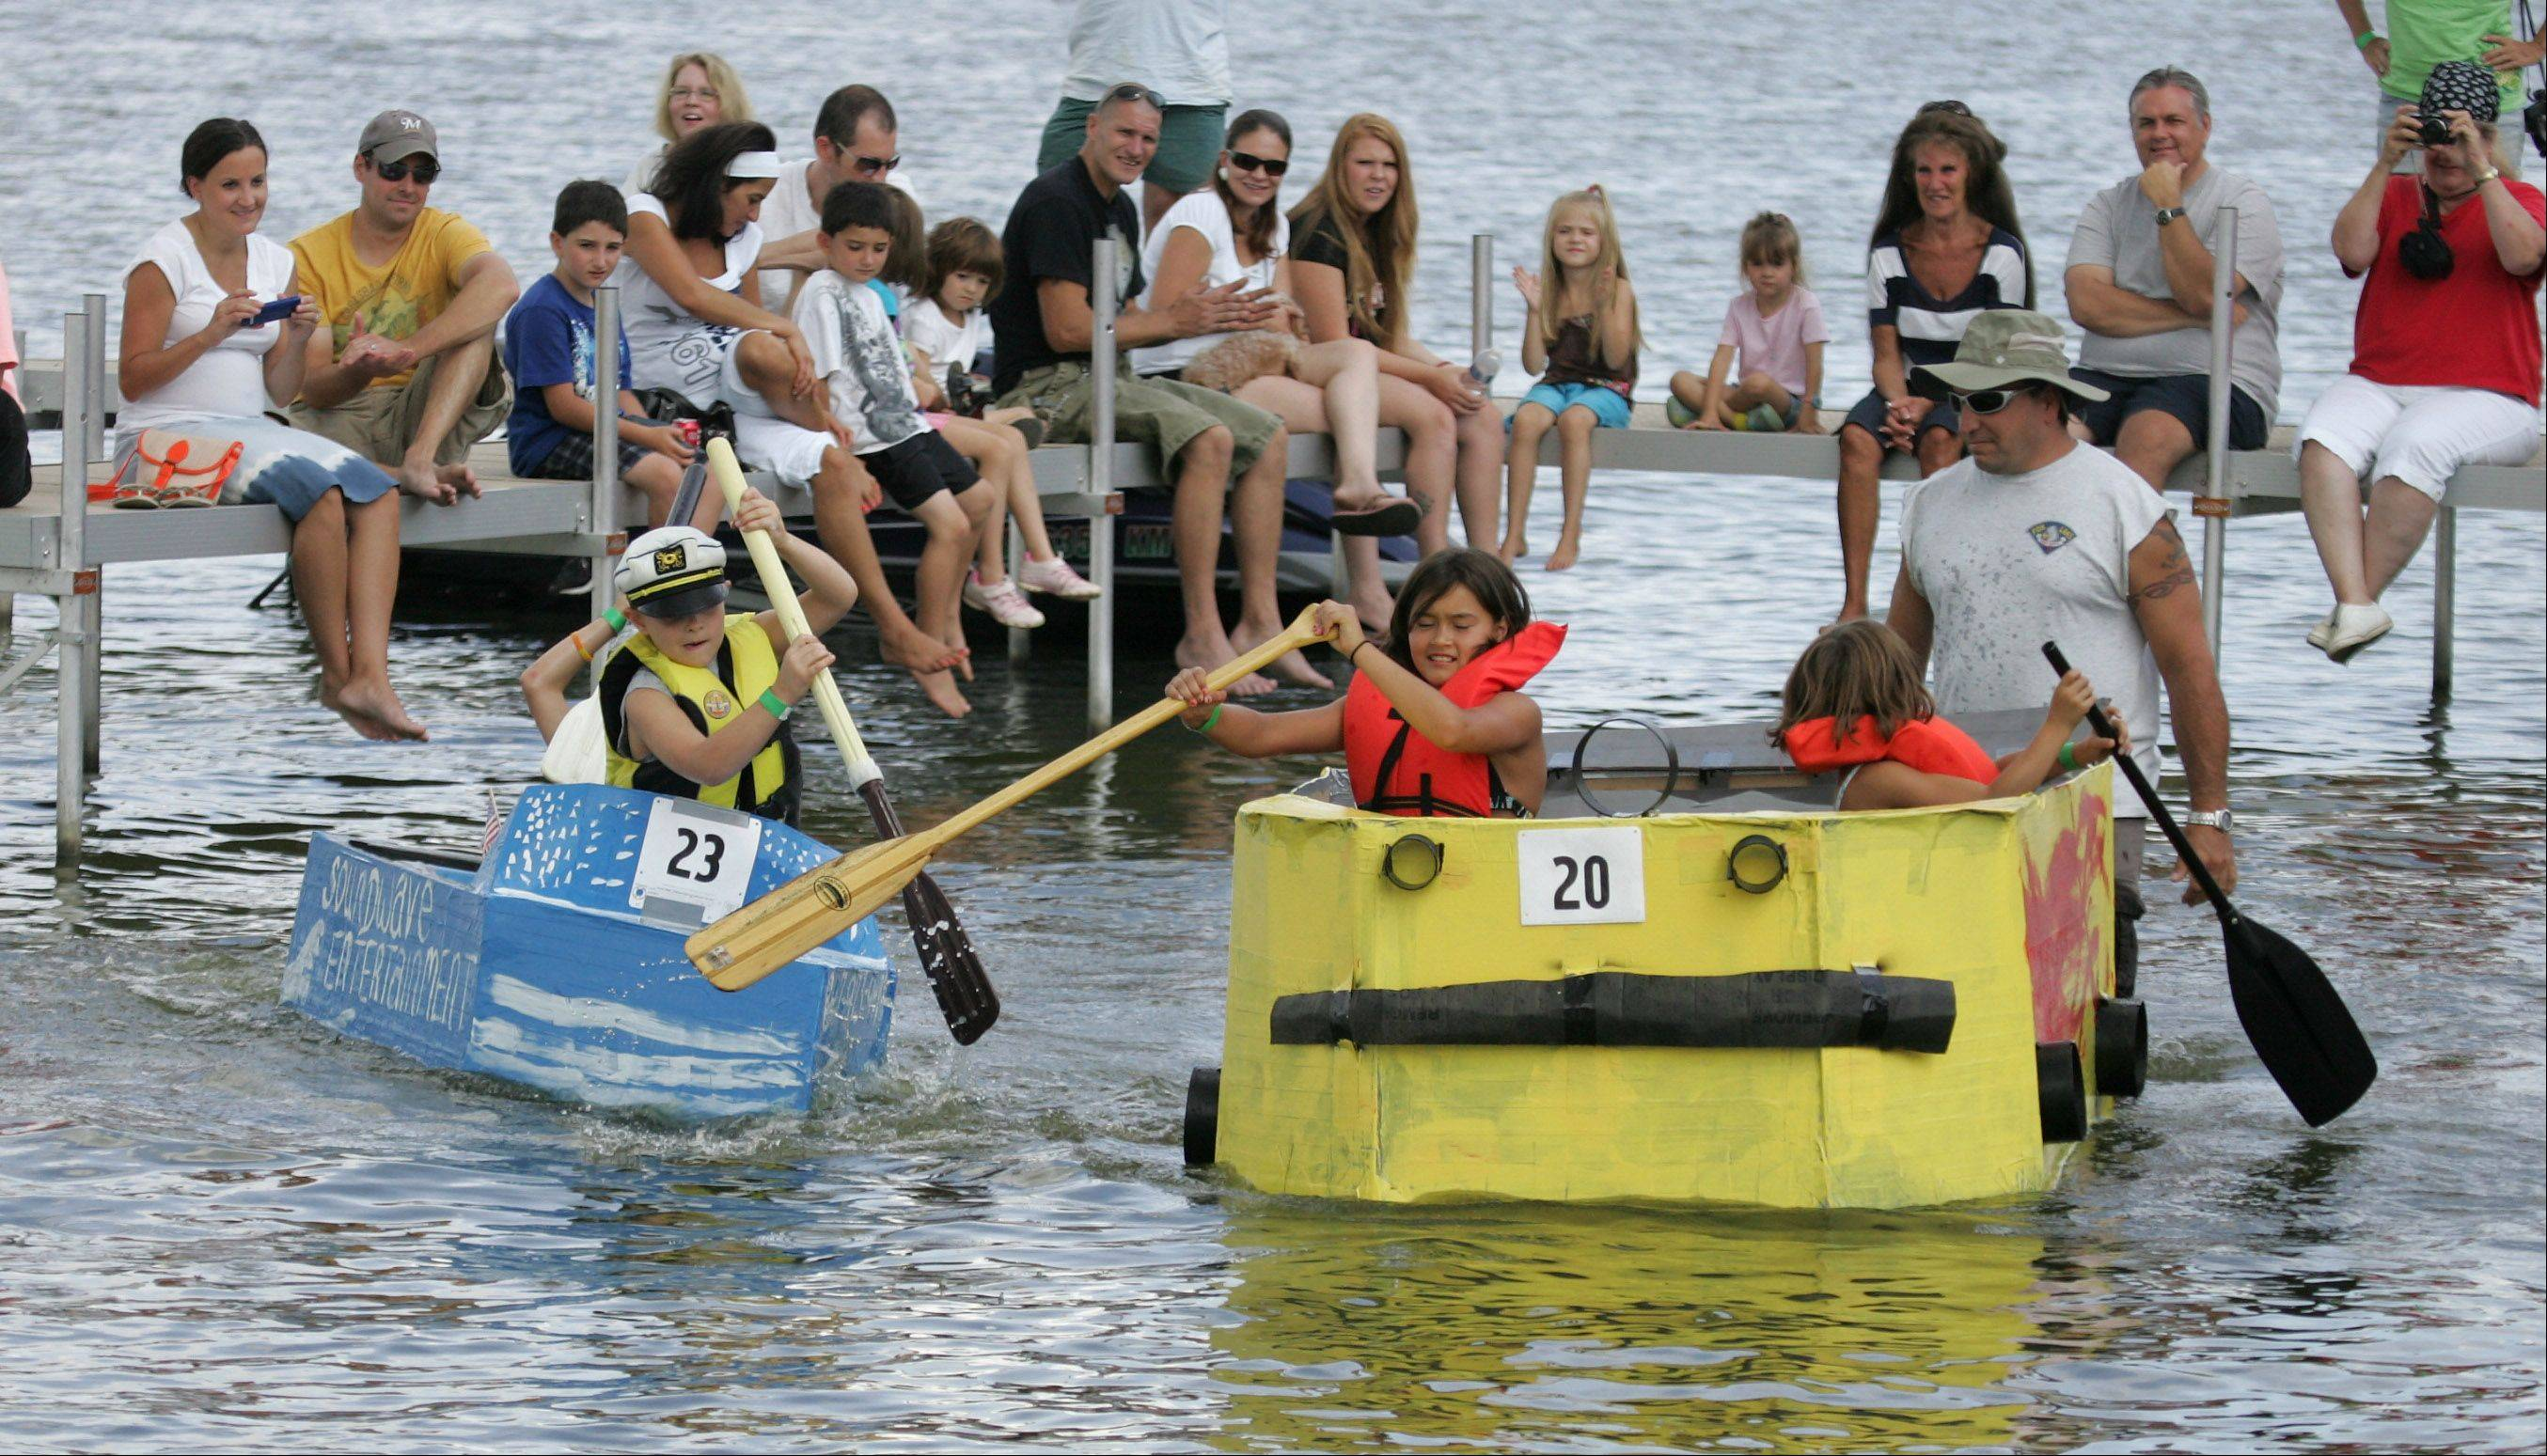 Spectators on the dock watch as the Soundwave Entertainmant boat battles the Yellow Car Boat during the annual Cardboard Cup Regatta Sunday at Lakefront Park sponsored by the Village of Fox Lake Parks and Recreation Department. Contestants built boats made strictly of cardboard, duct tape and paint and raced for medals and trophies.